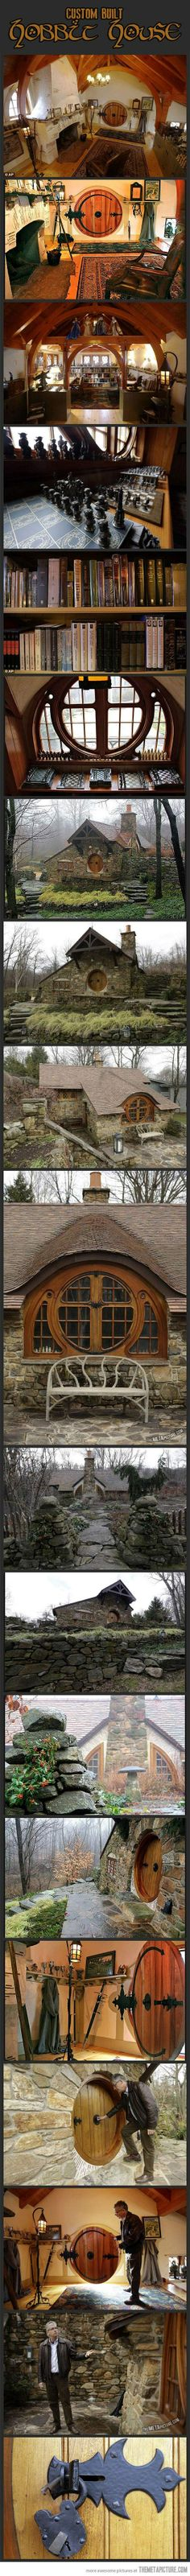 Cottages & Hobbit Houses  - Travel back in time with a Past Life Reading at the link.